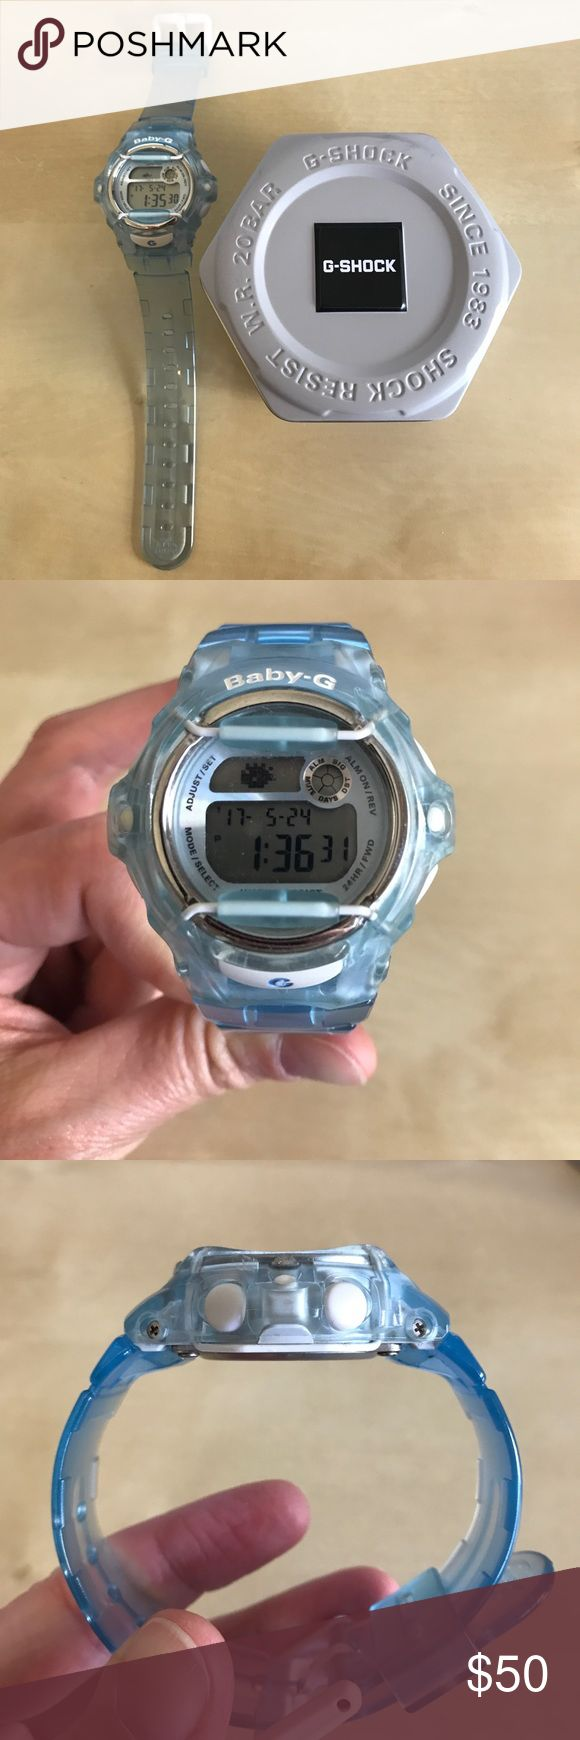 Casio Baby-G G-Shock Digital Watch Like New Like new Casio Baby-G G-Shock watch comes in original box with manual. Model 3252. Lovely condition. Casio Accessories Watches